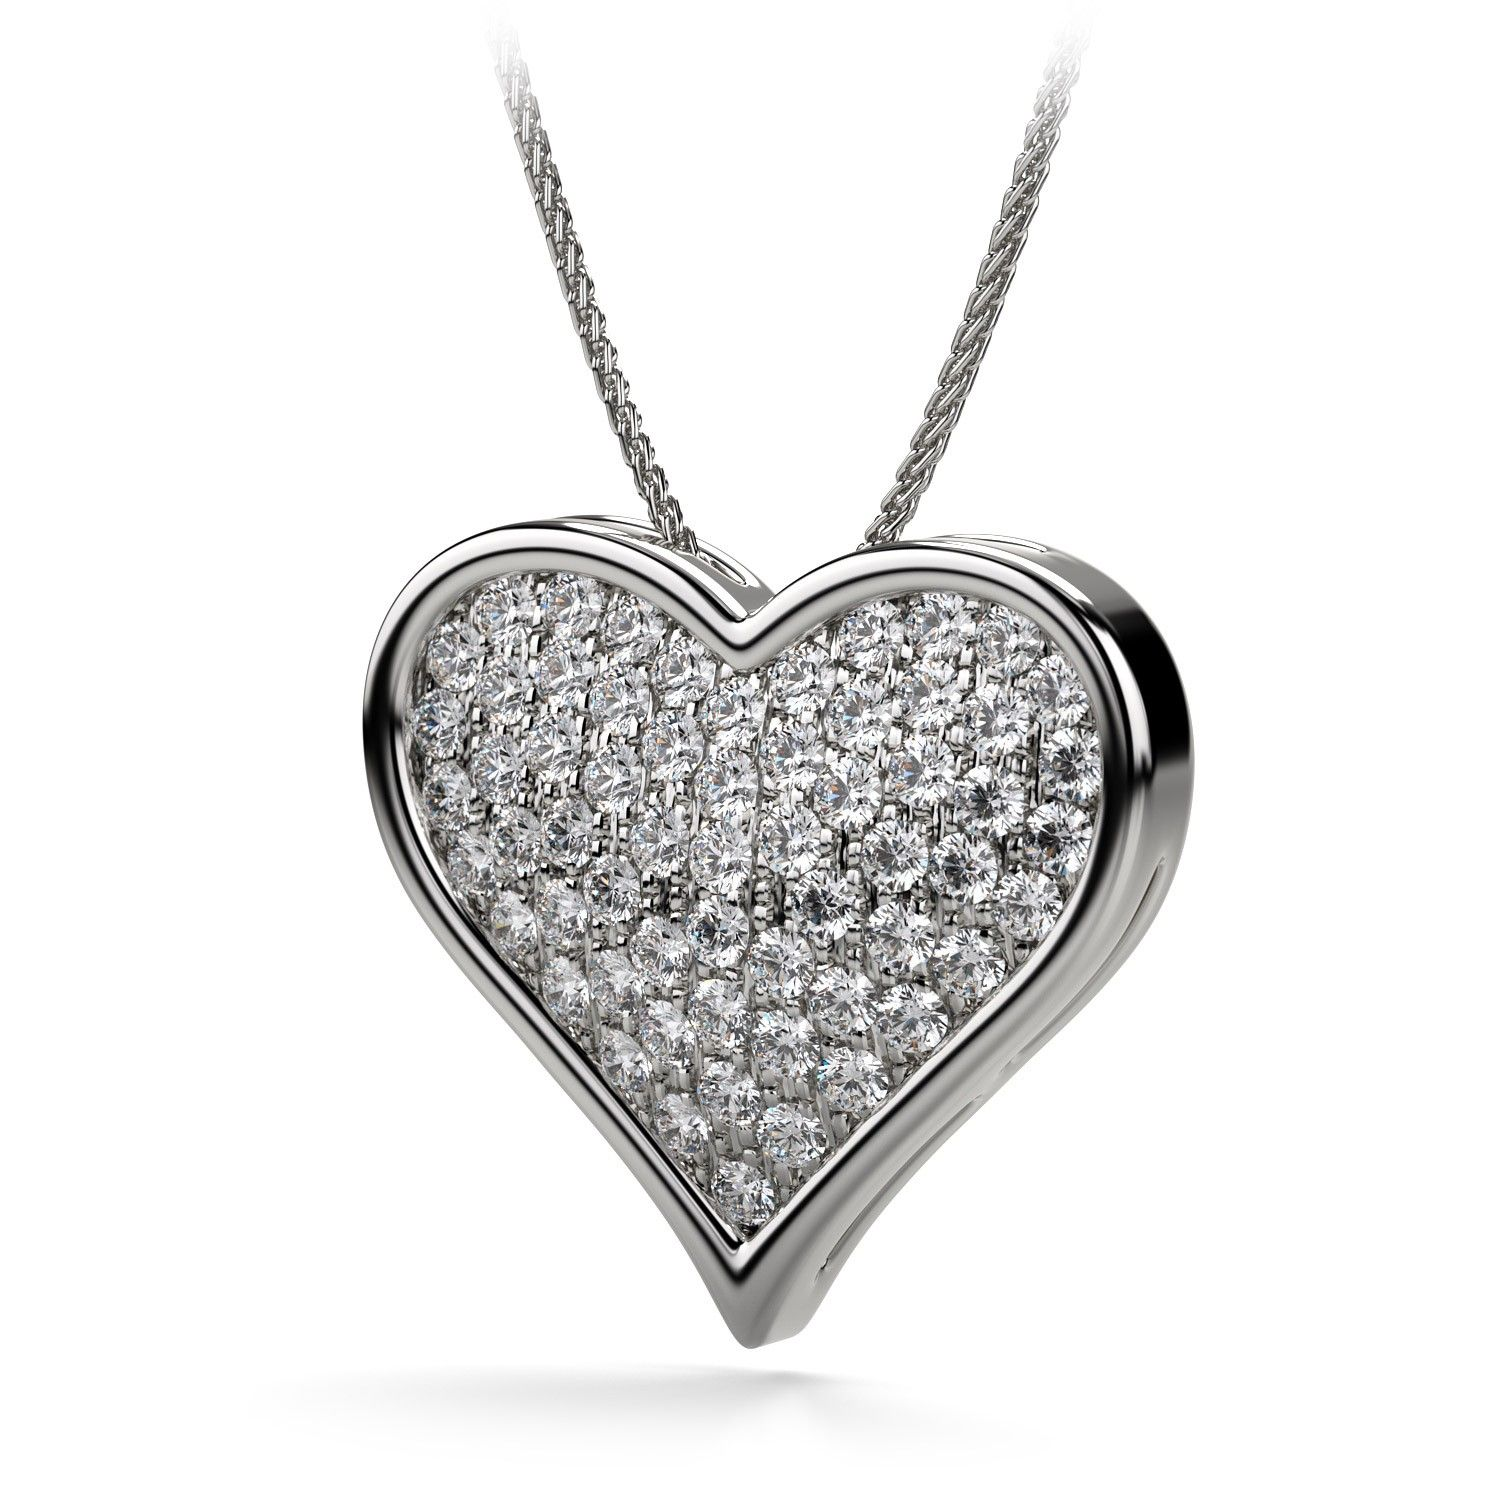 Under 3000 125ctw flat heart shaped pave set diamond necklace 125ctw flat heart shaped pave set diamond necklace in 18k white gold mozeypictures Images